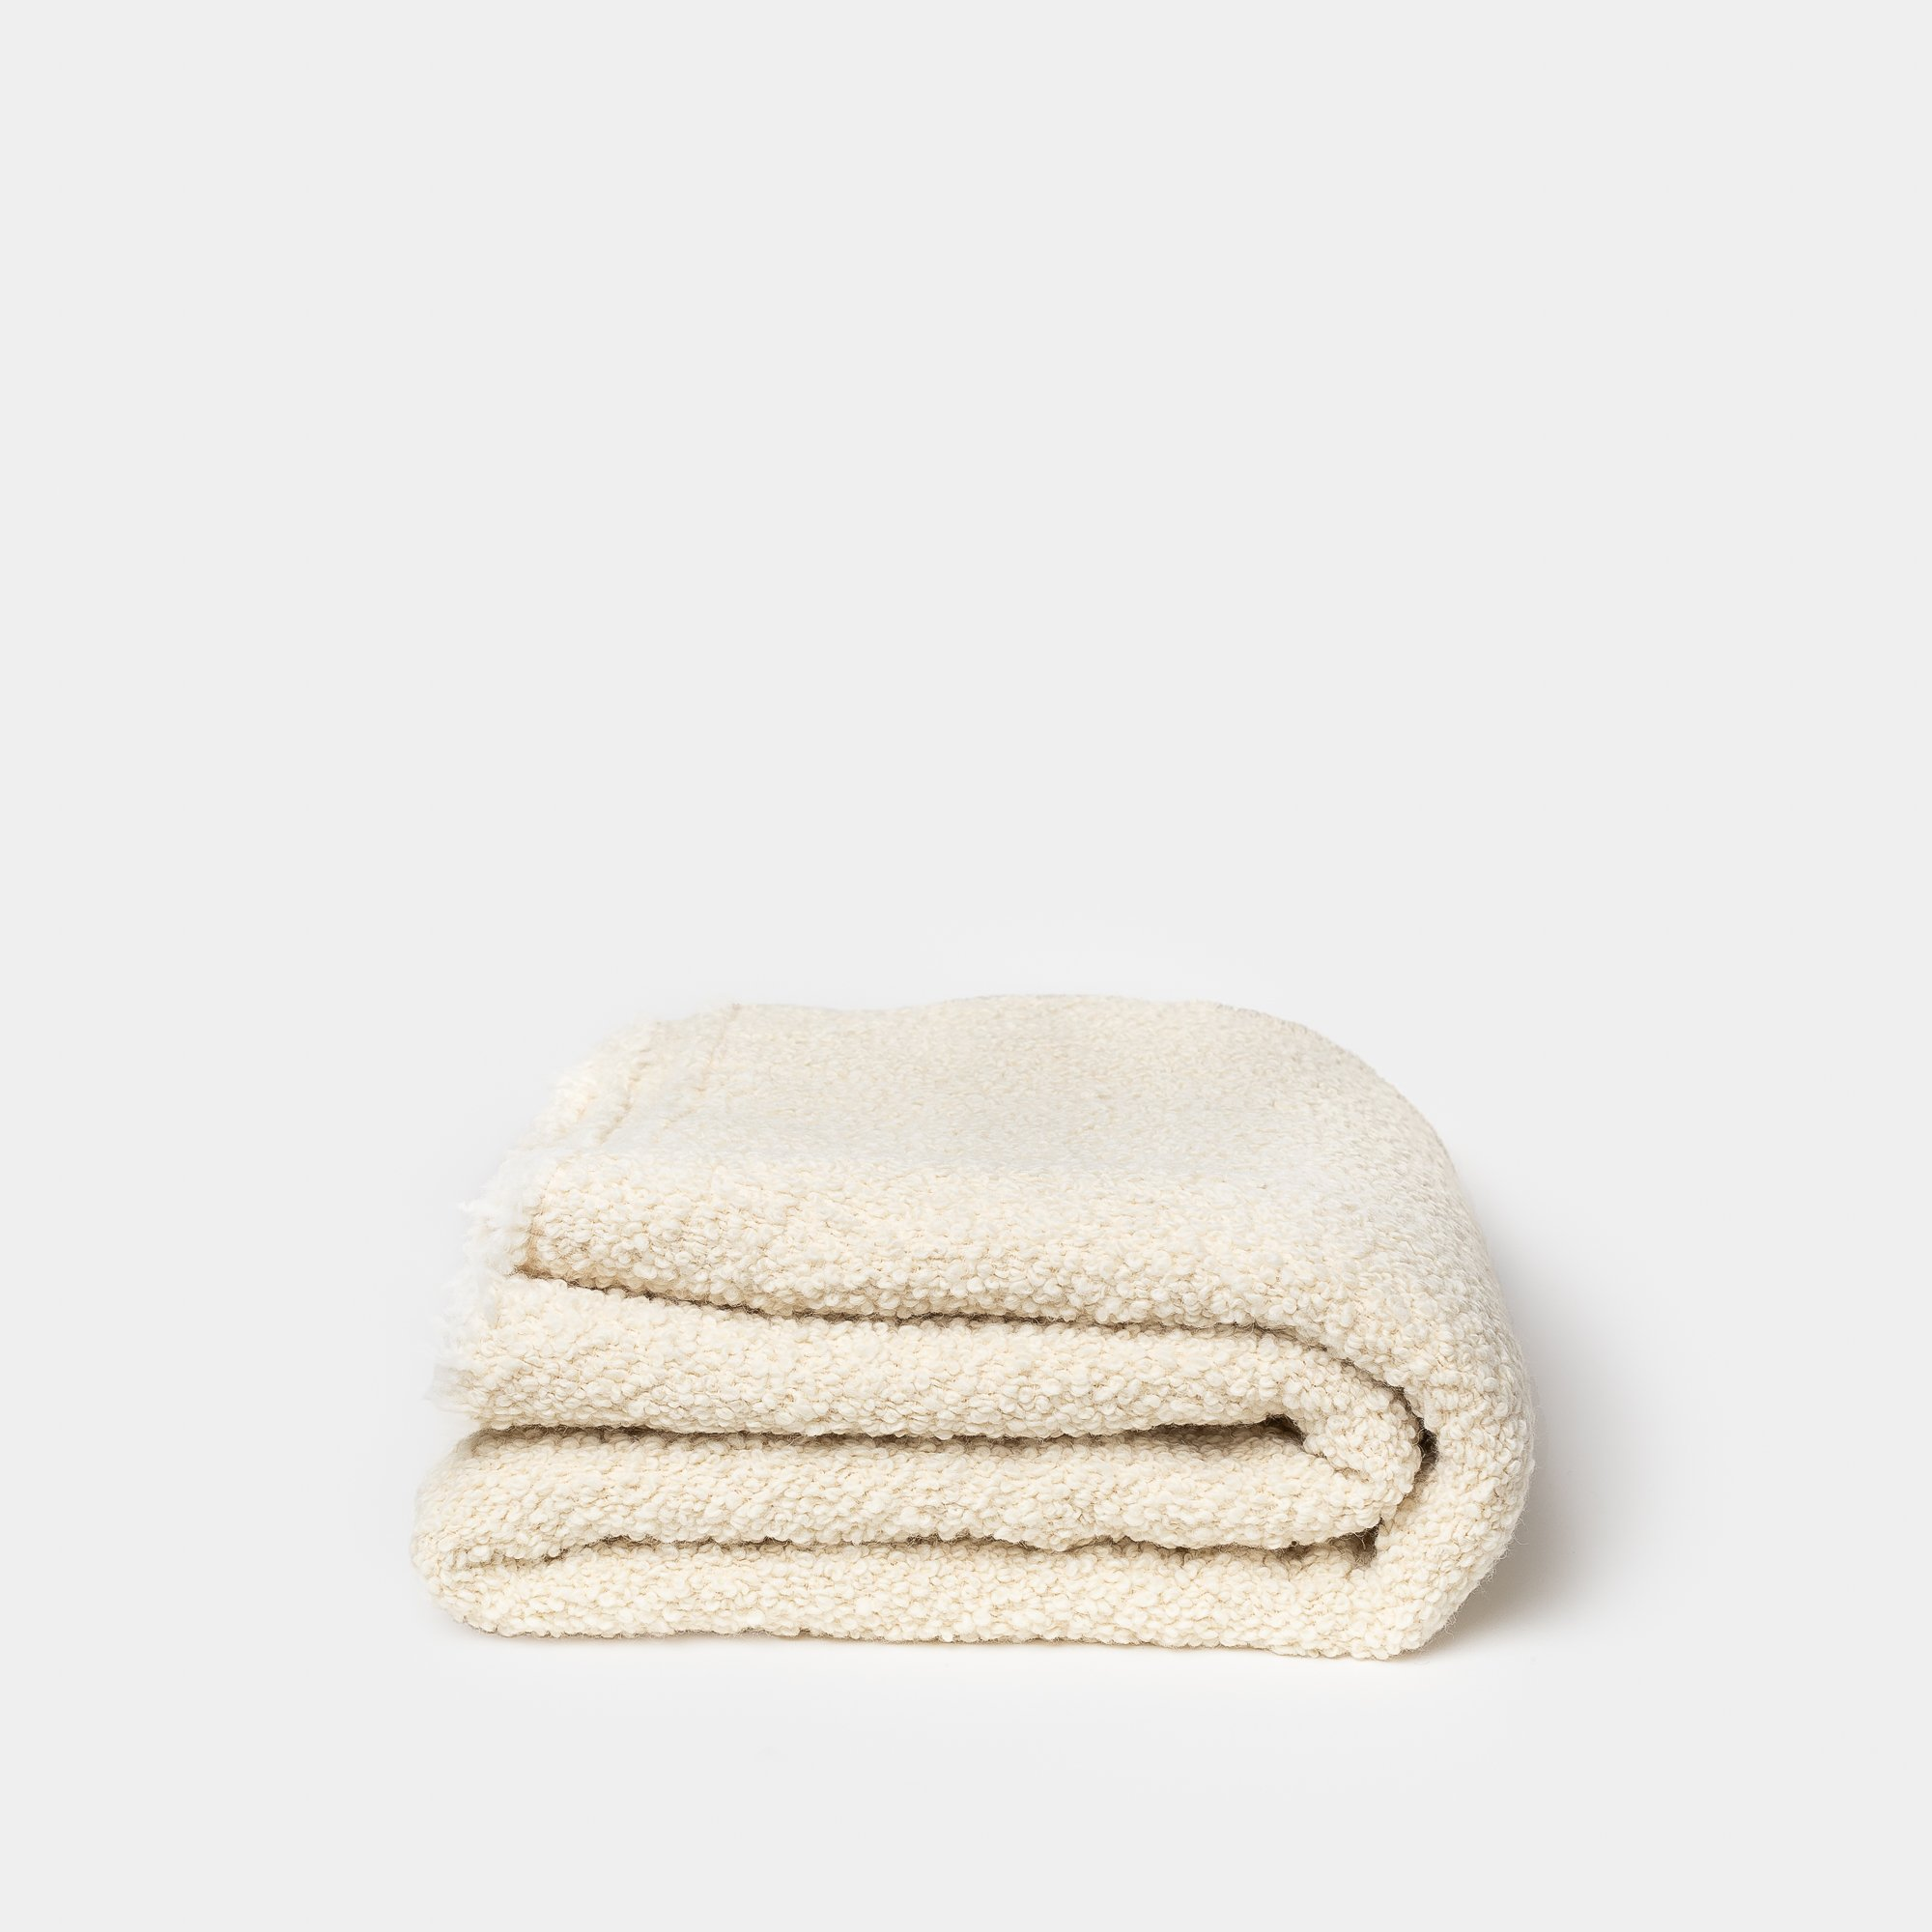 ALL-SORTS-OF-SHOPPE-CREAM-KURLISURI-THROW